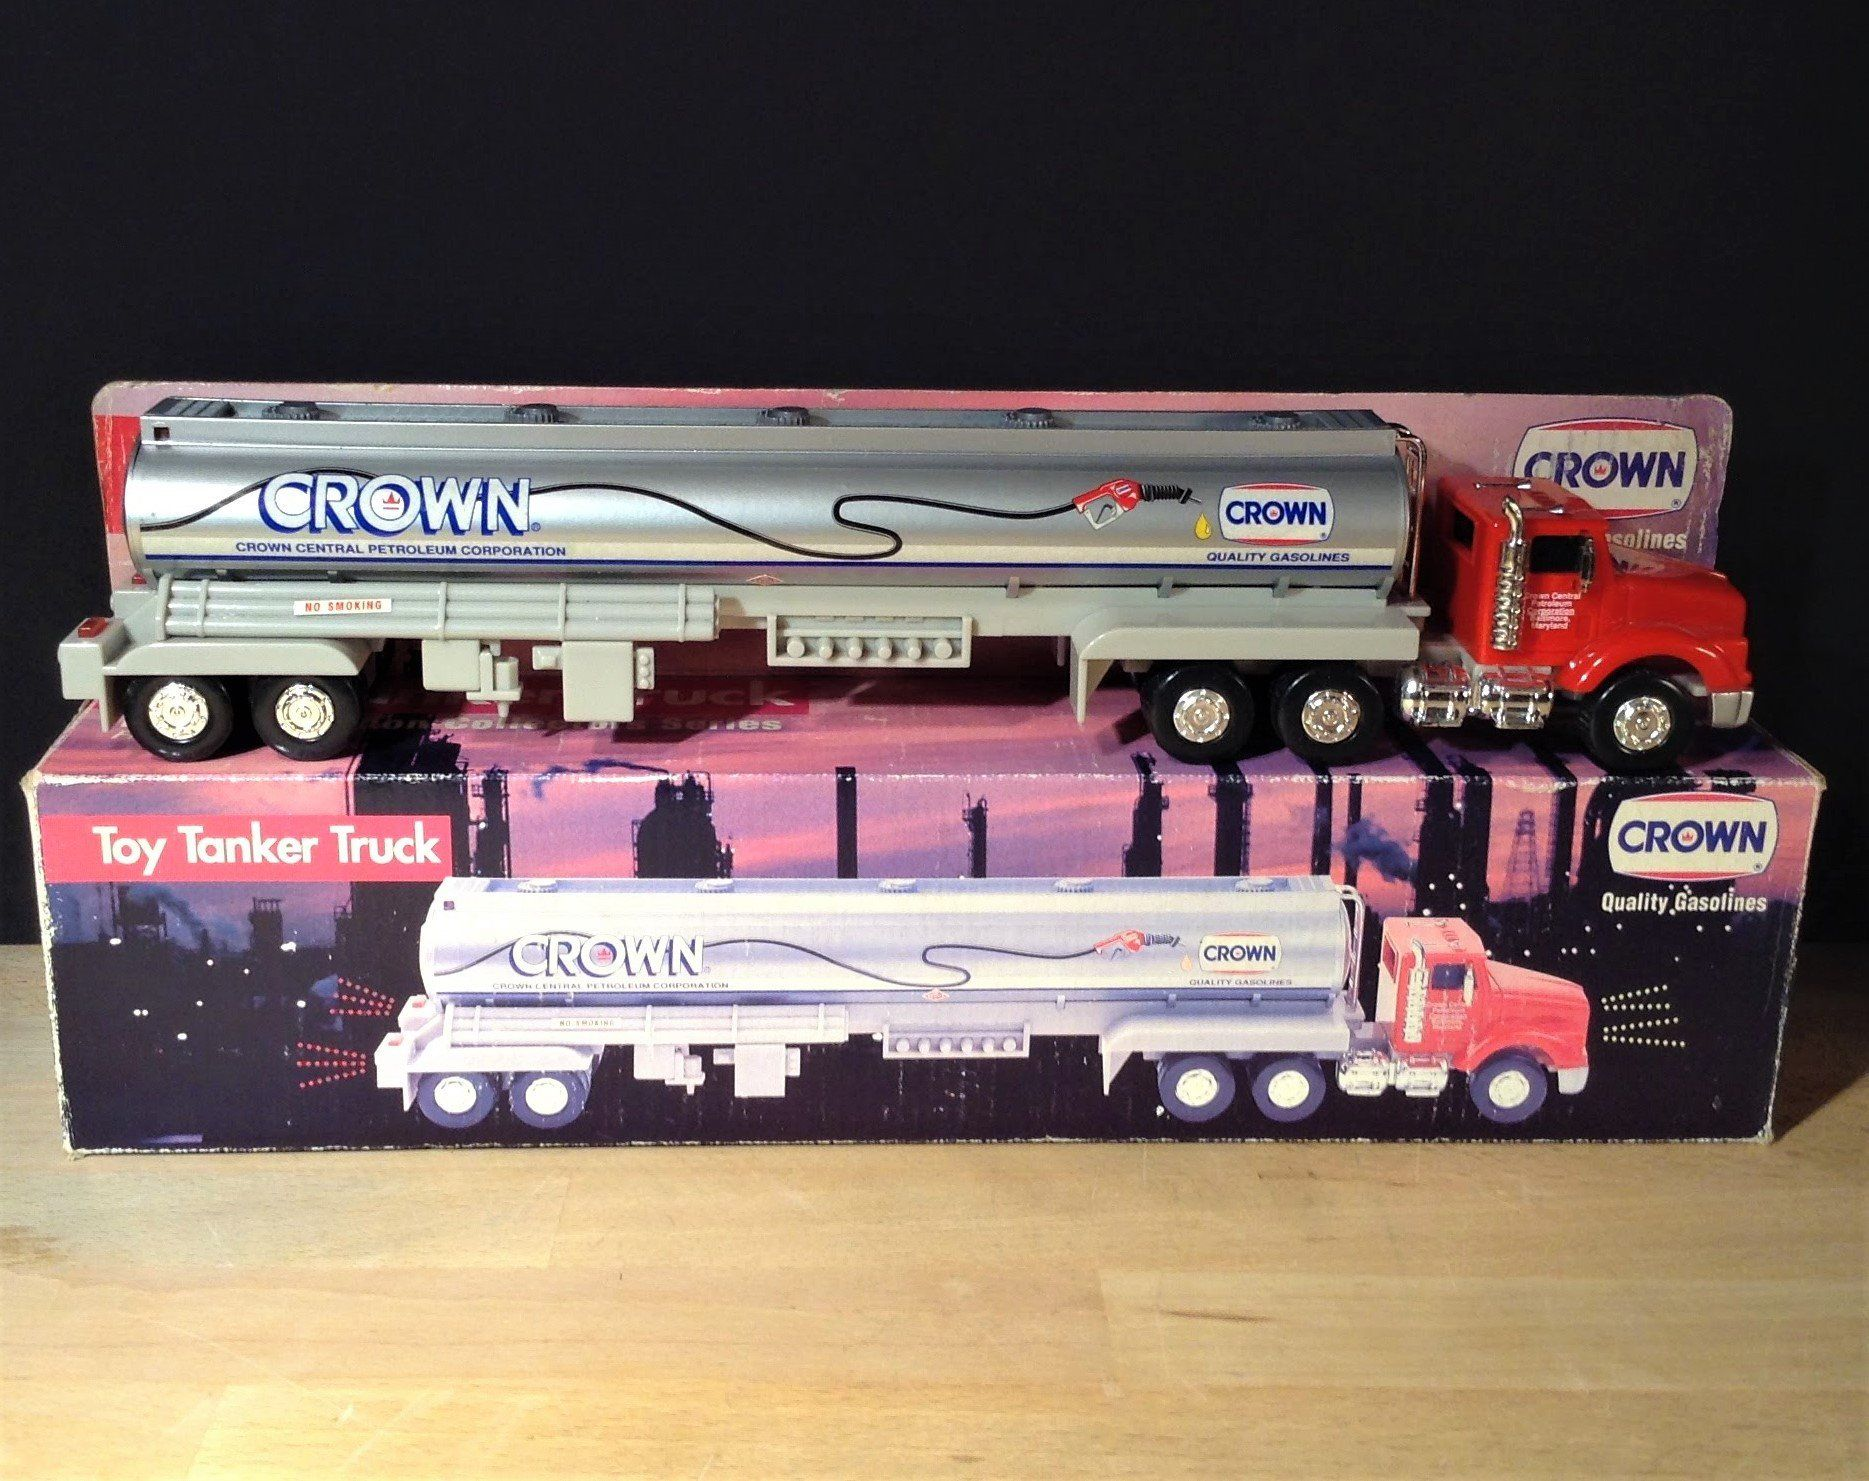 Crown Gasoline Tanker Truck Toy w/ Working Lights & Sound